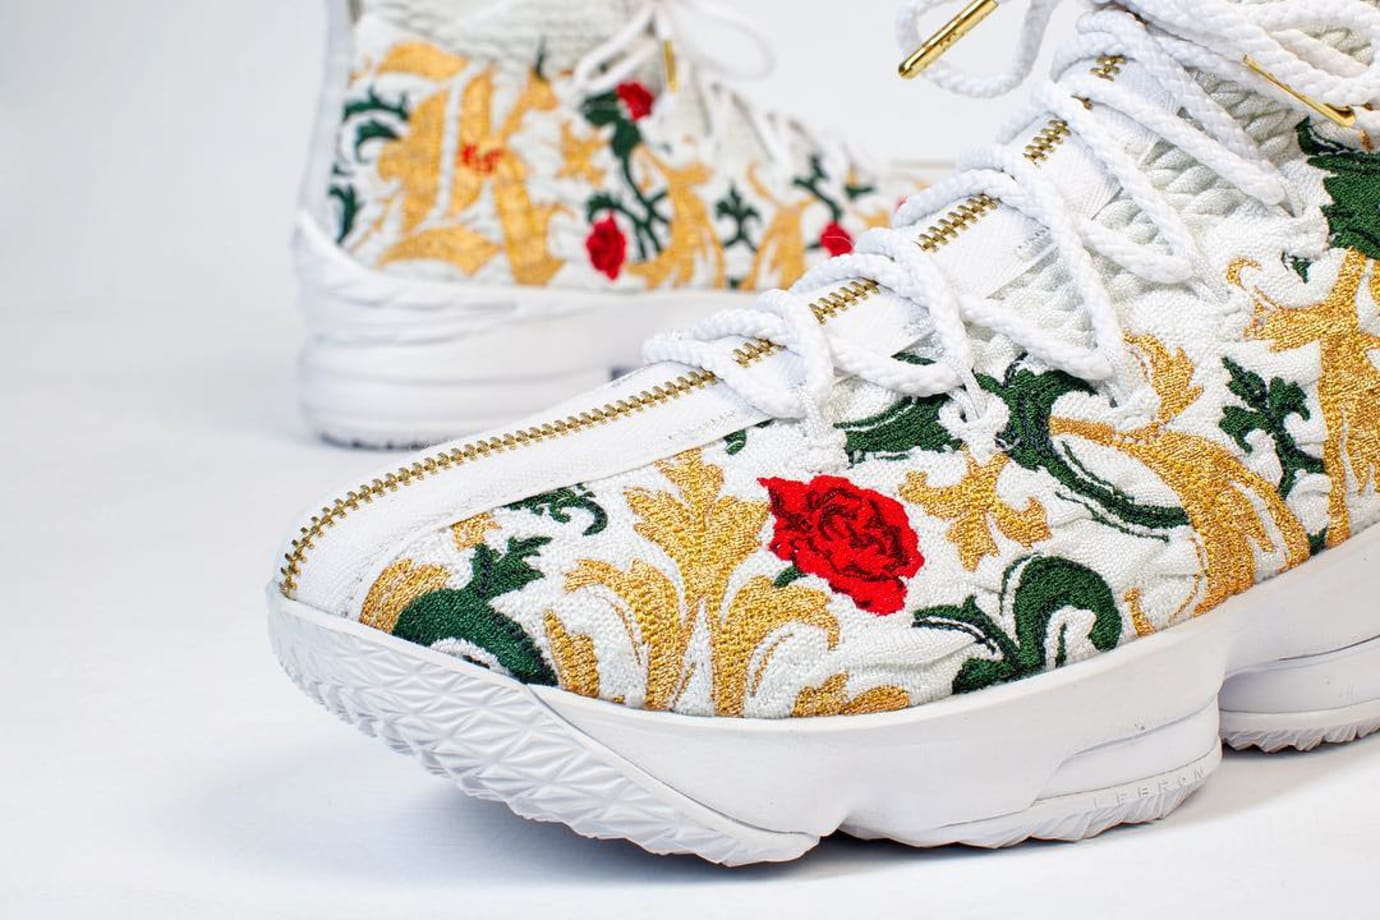 Nike LeBron 15 Zip Floral Colorway  573e0a9b53